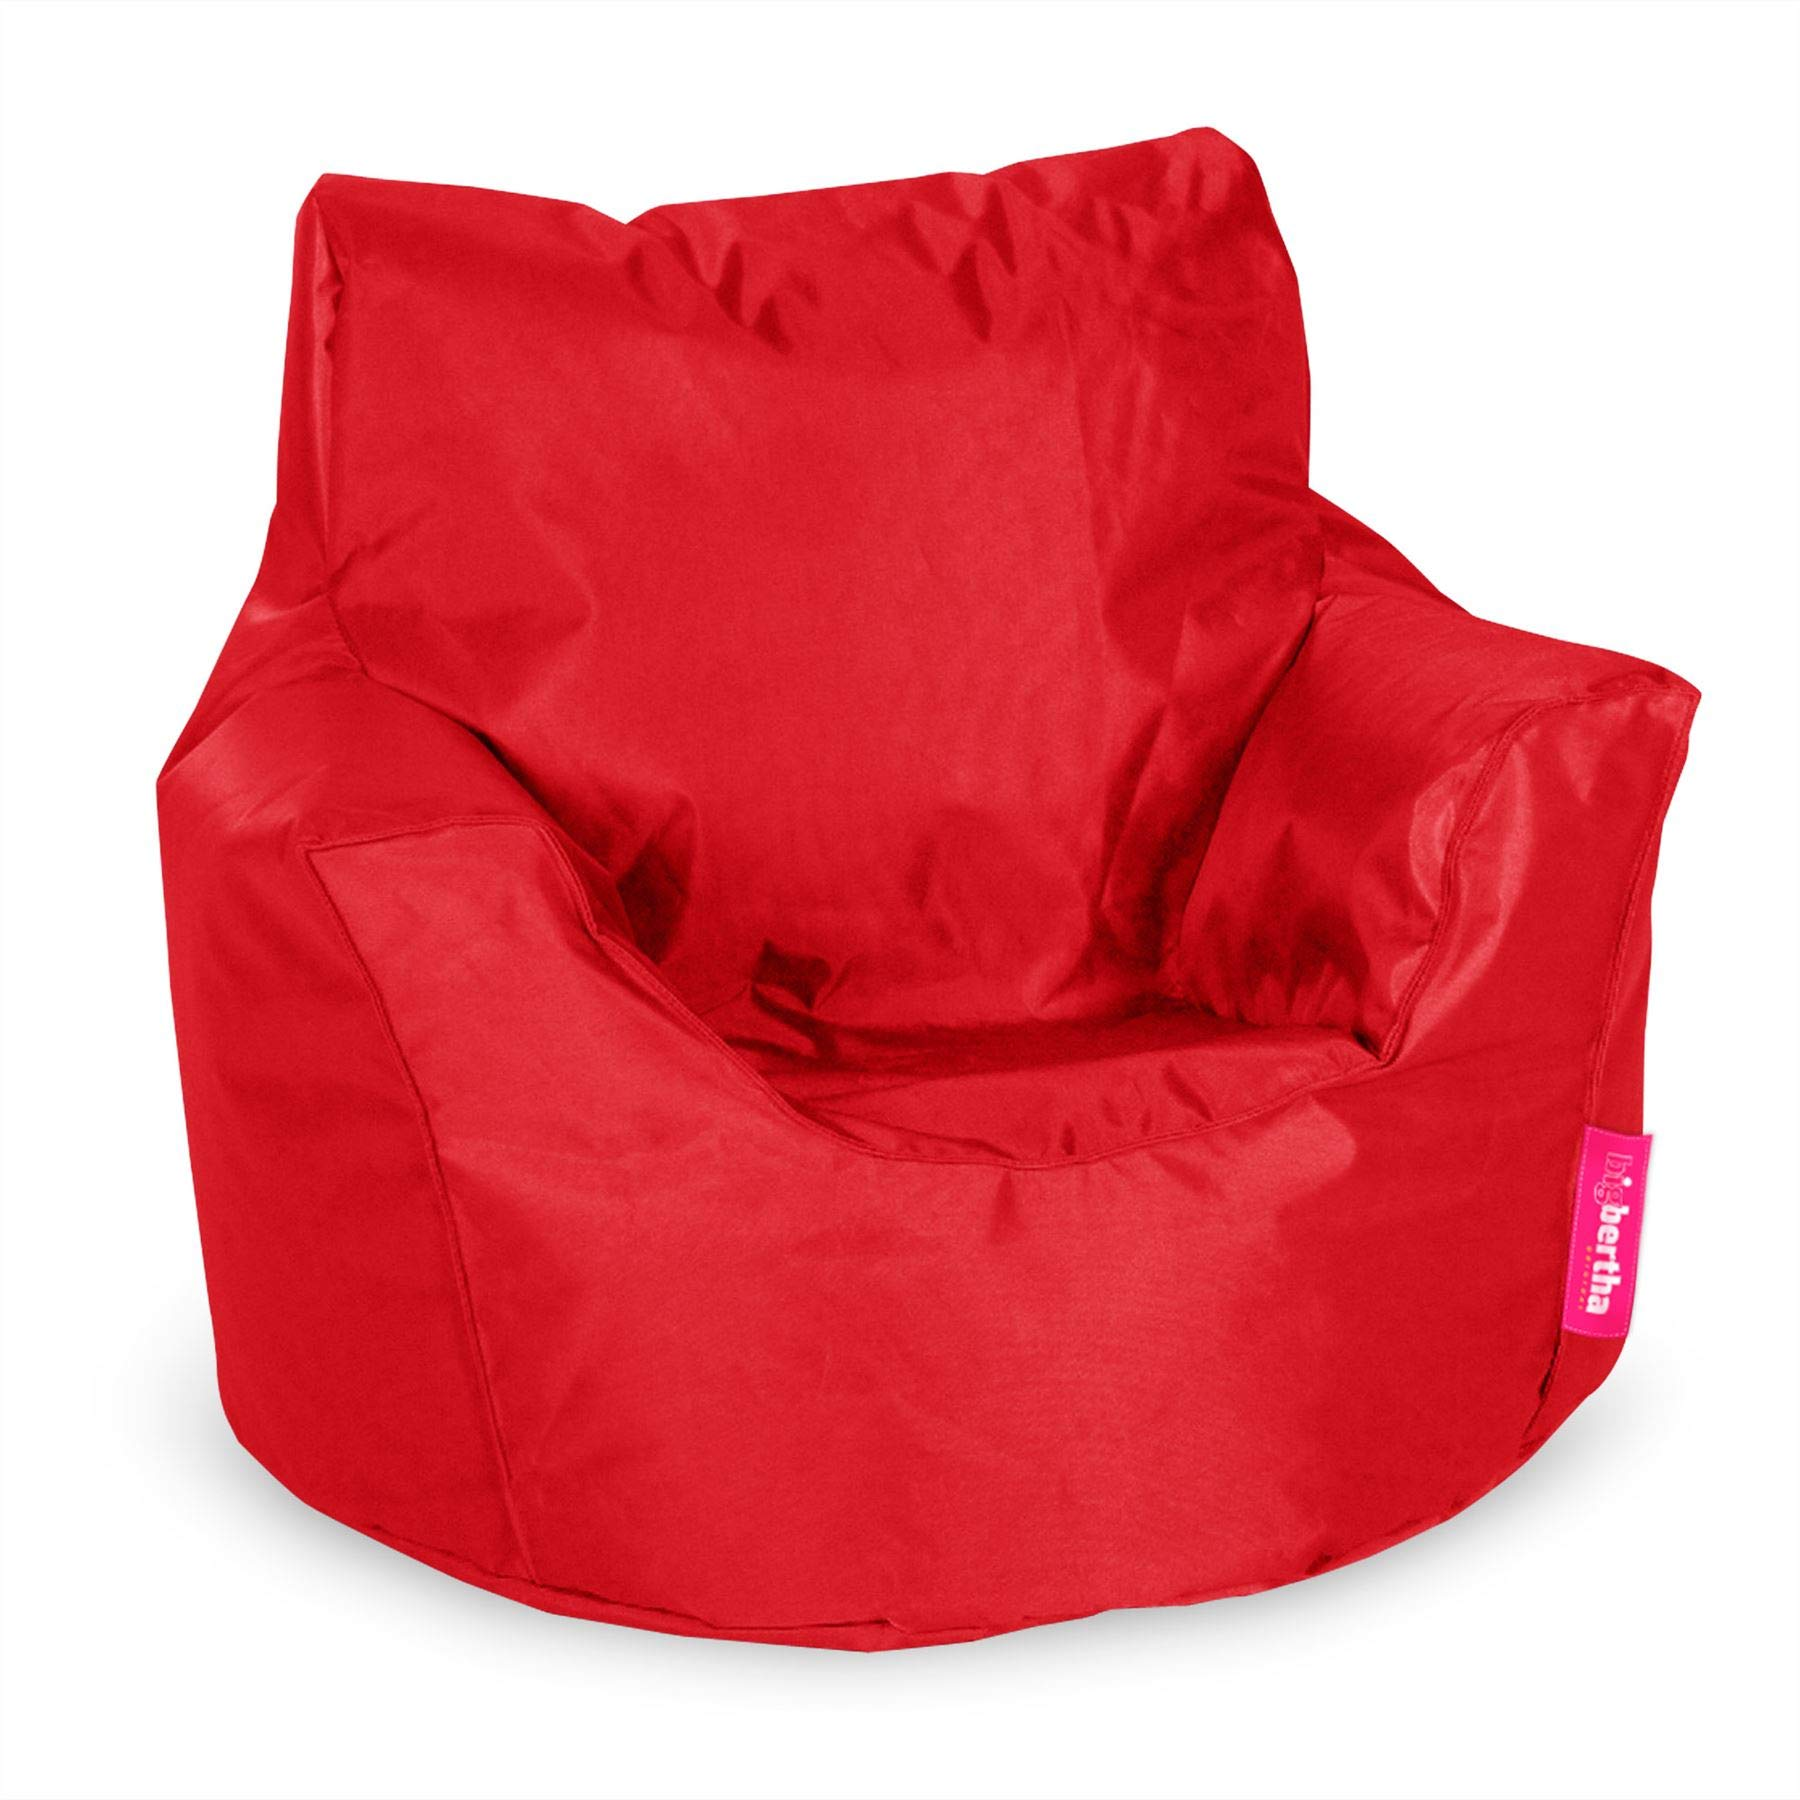 ROSSO KAWIN Shopping on line Pouf Poltrona pera puff SACCO puf